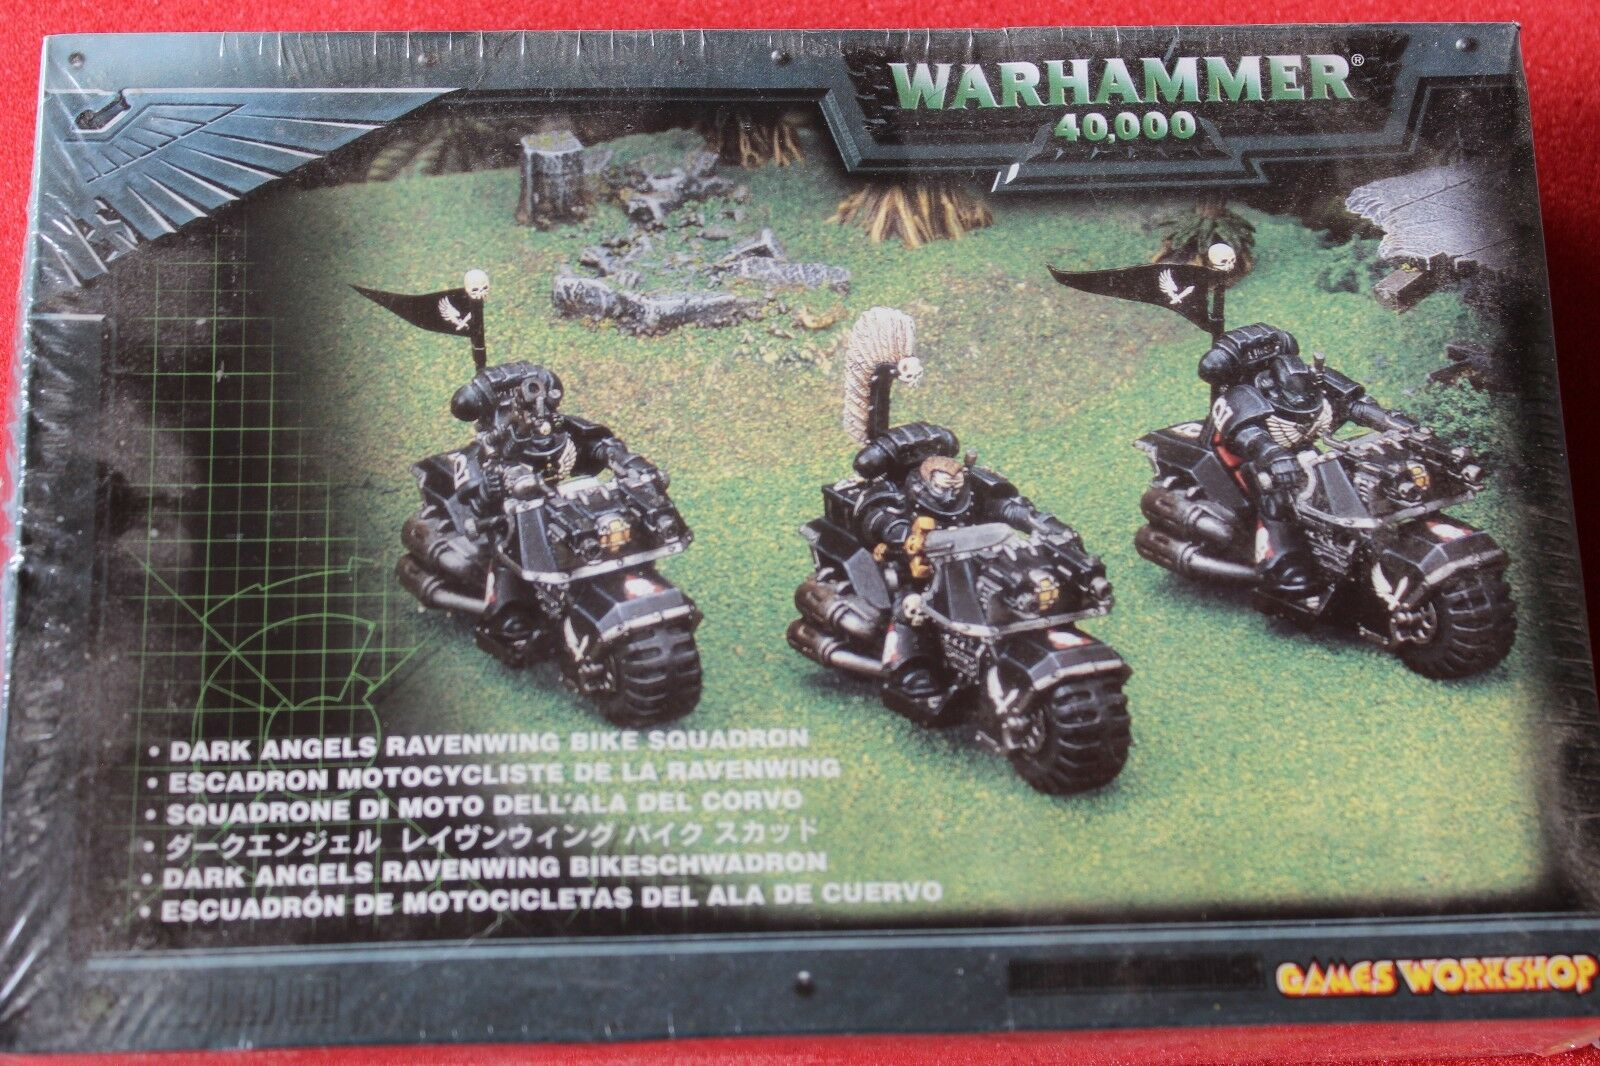 Games Workshop WARHAMMER 40k Dark Angels Ravenwing BIKE SQUADRONE NUOVO CON SCATOLA 1999 fuori catalogo